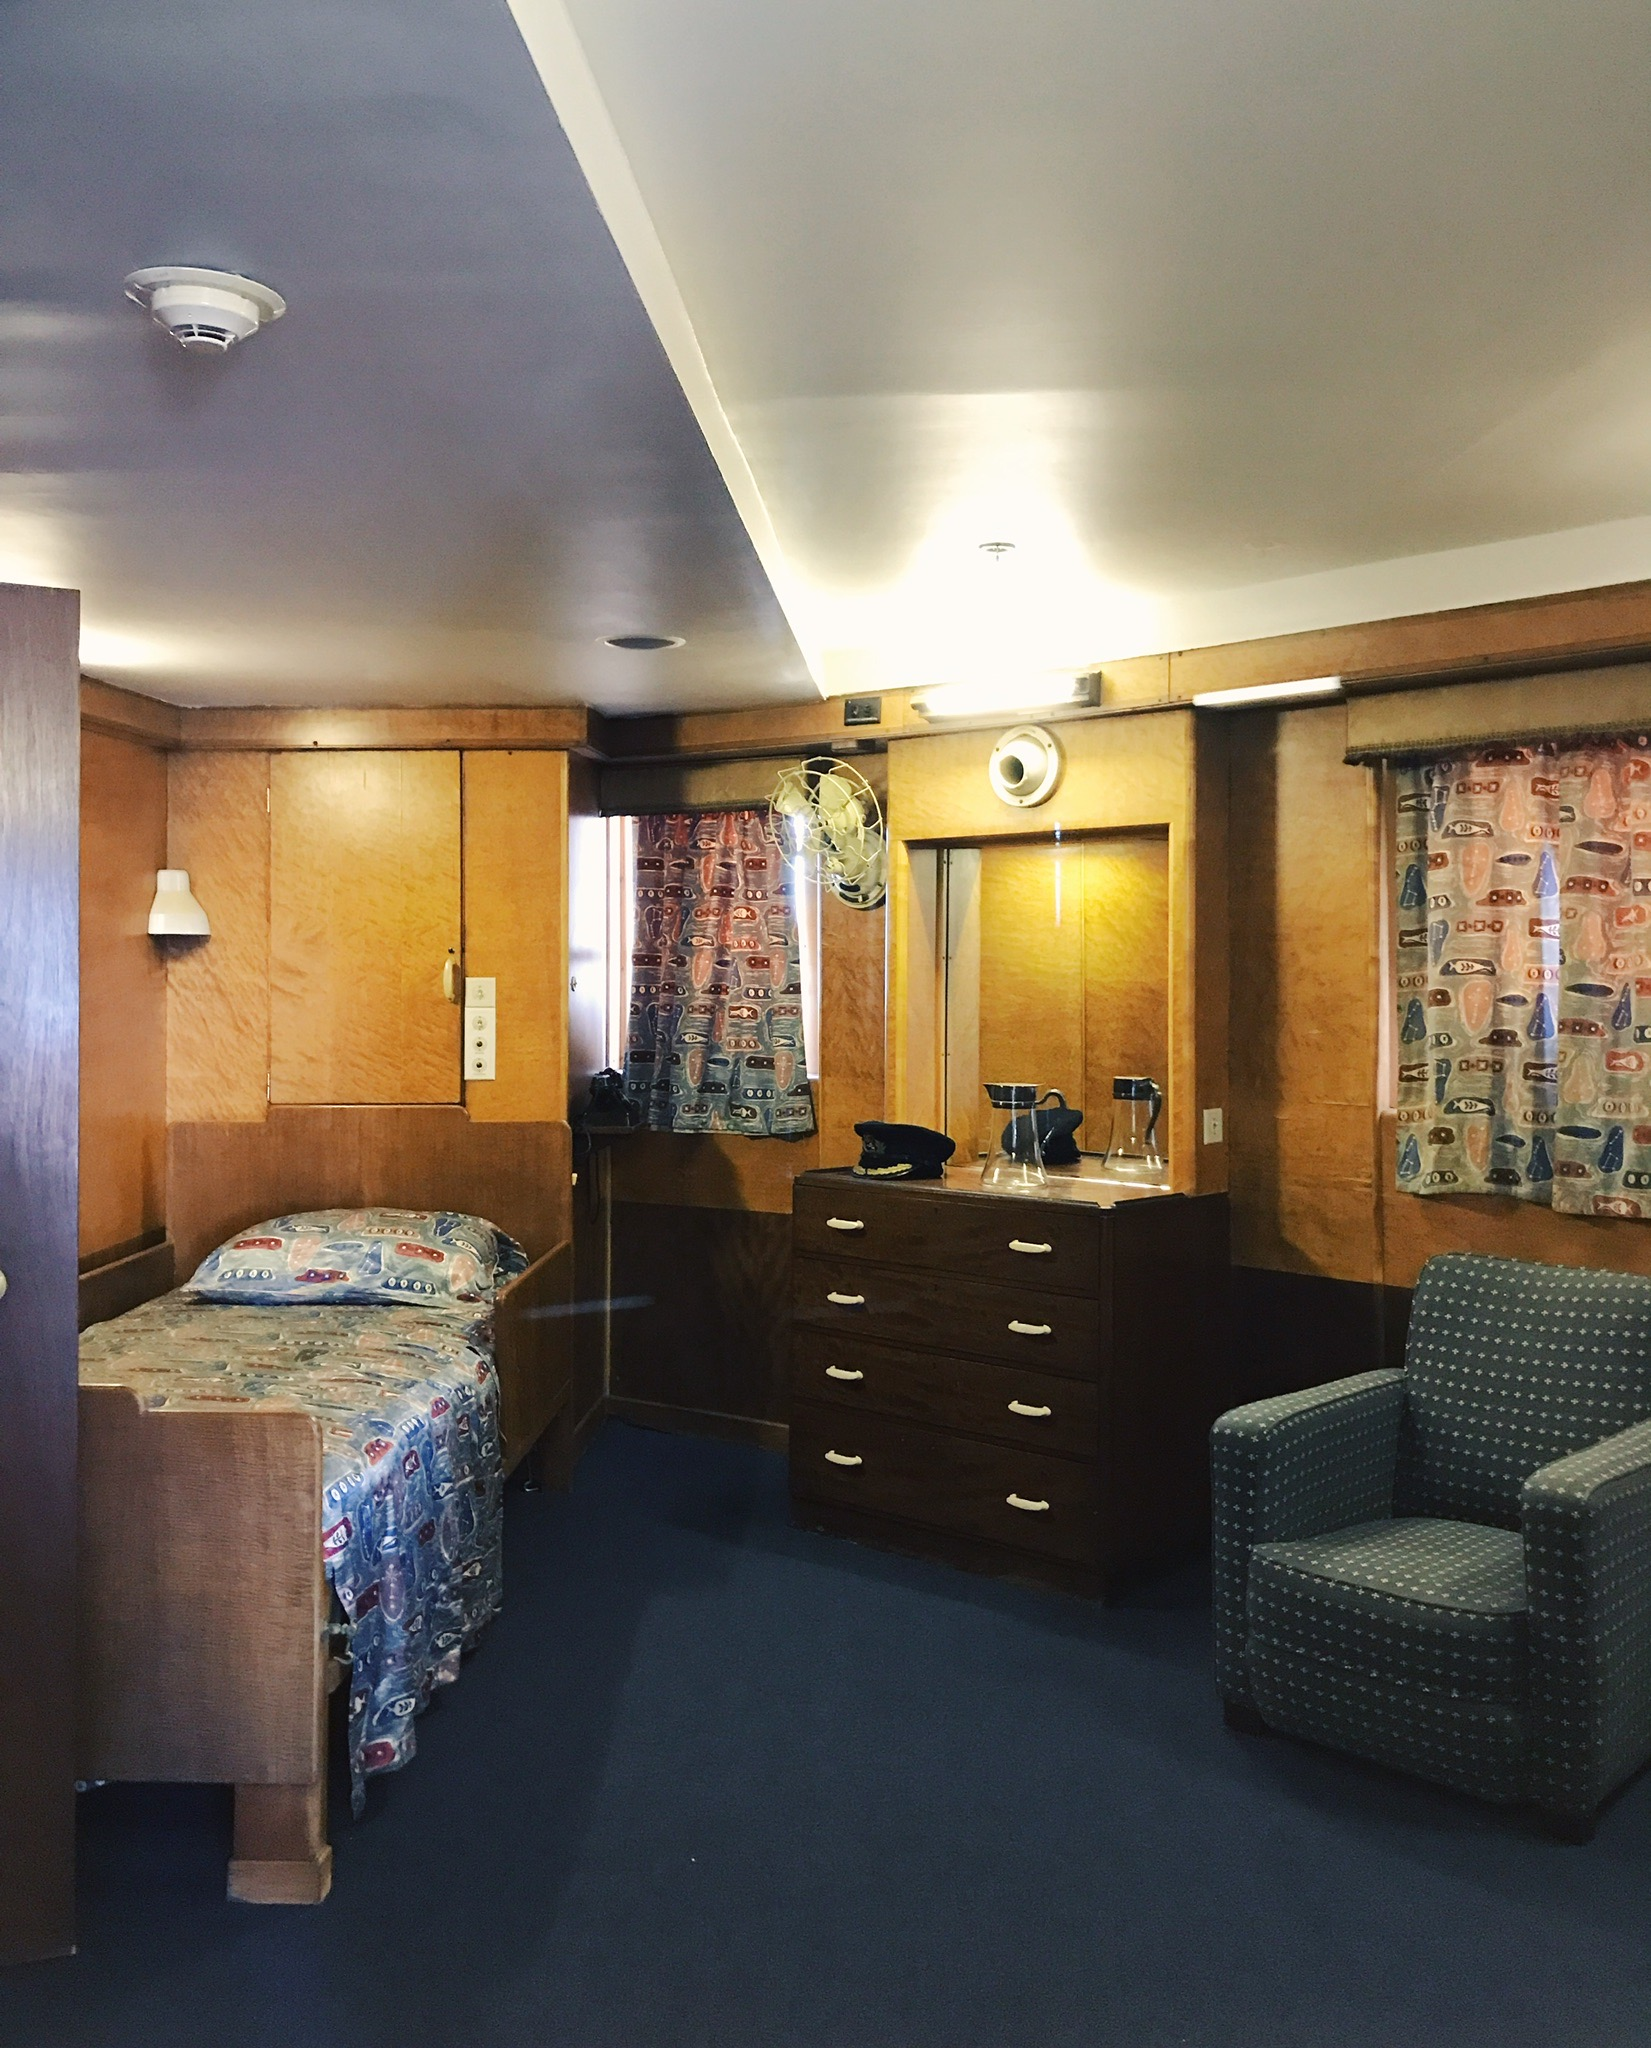 Cabin room of the Queen Mary